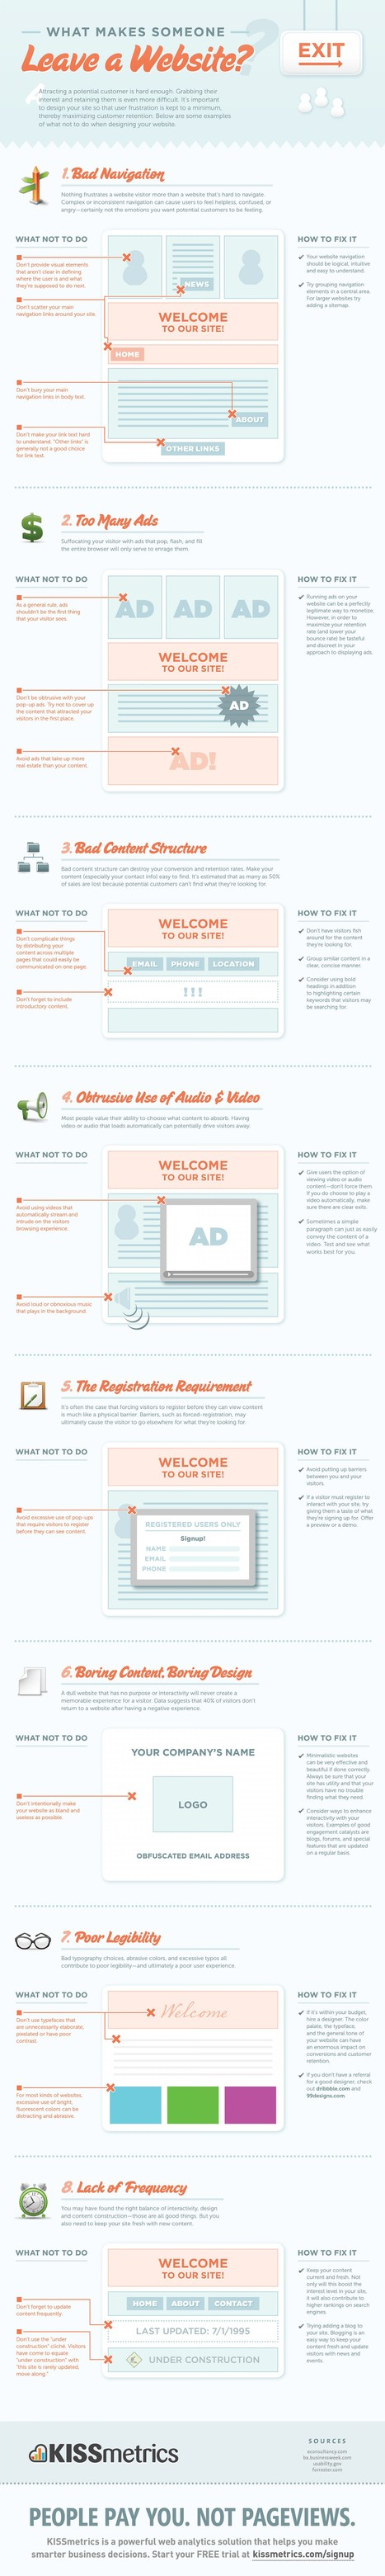 Avoid These 8 Deadly Sins of Site Design | Infographic | timms brand design | Scoop.it